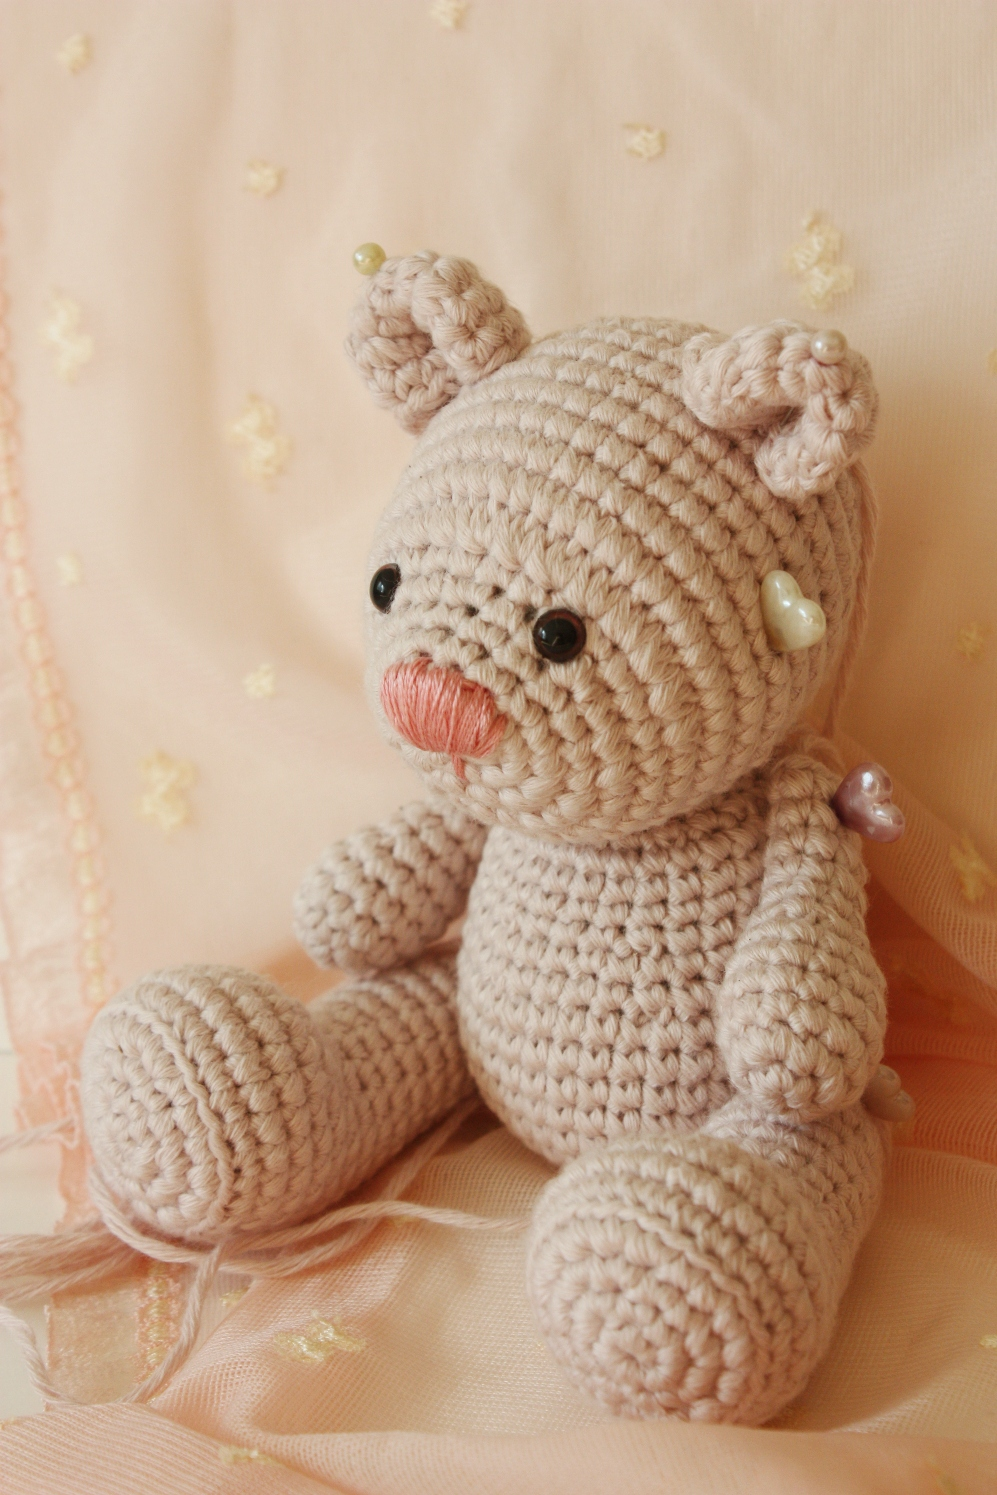 Crochet Pattern Amigurumi Bear : Amigurumi creations by Laura